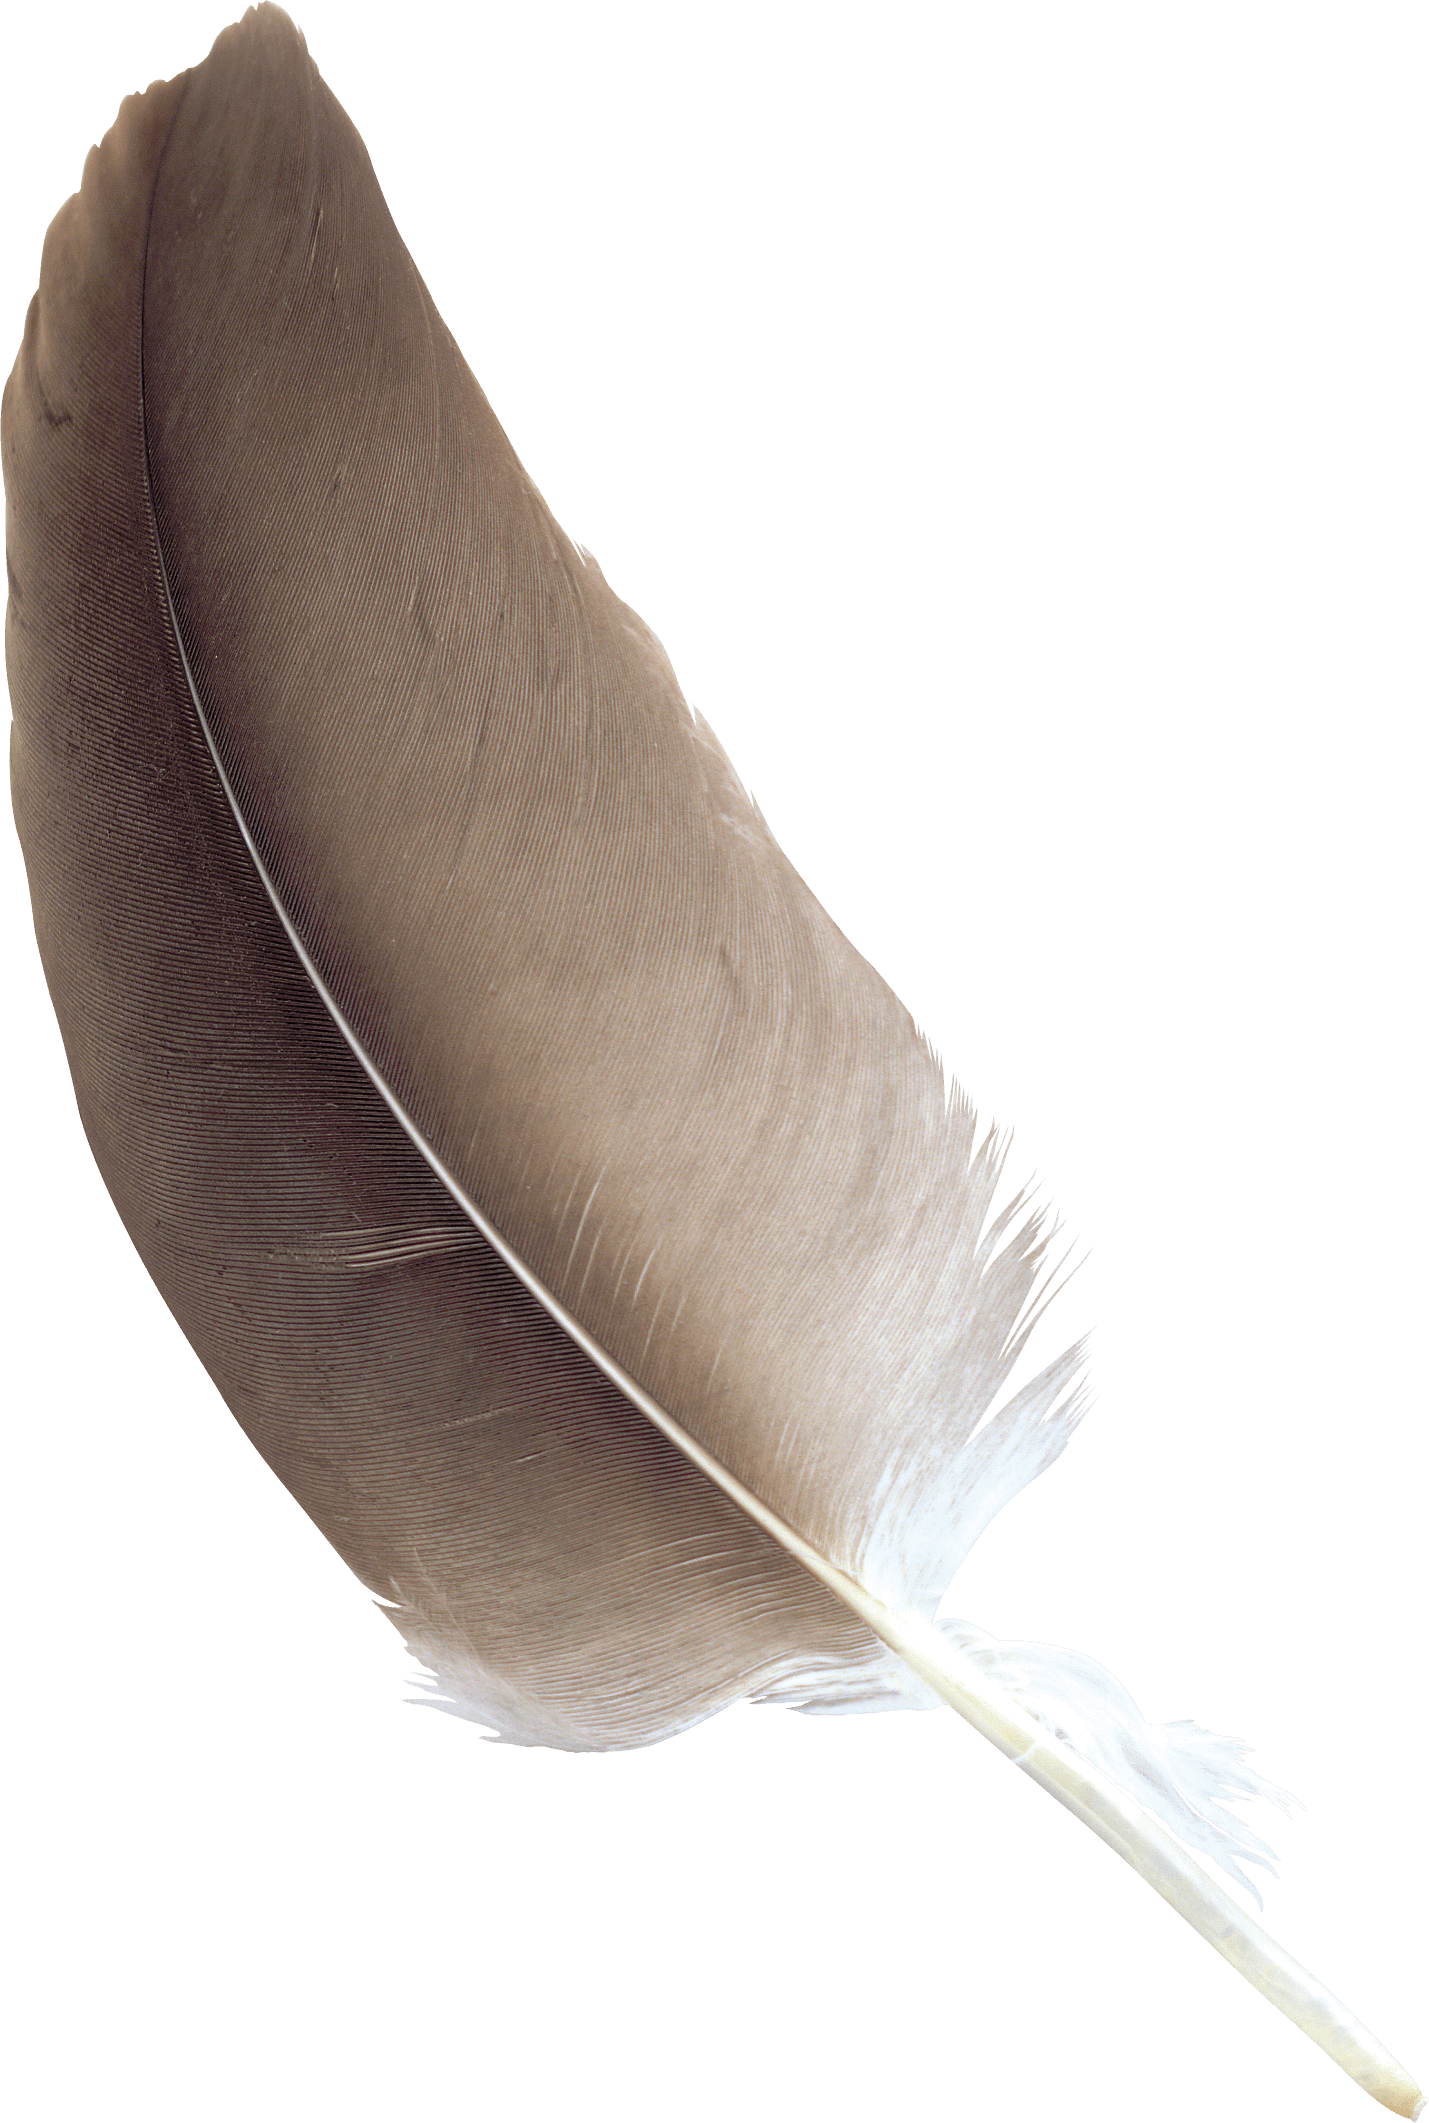 Feathers transparent png. Feather brown stickpng